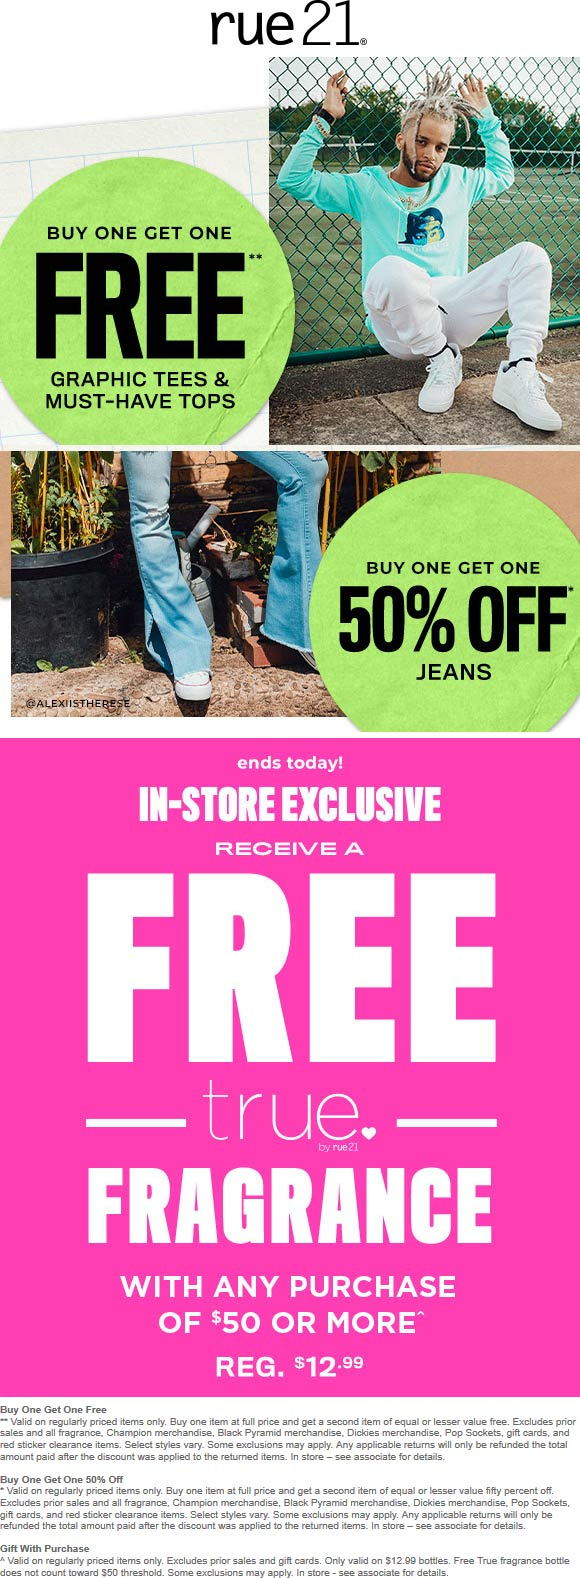 Rue21.com Promo Coupon Free fragrance with $50 spent, second tshirt free & more today at rue21, ditto online